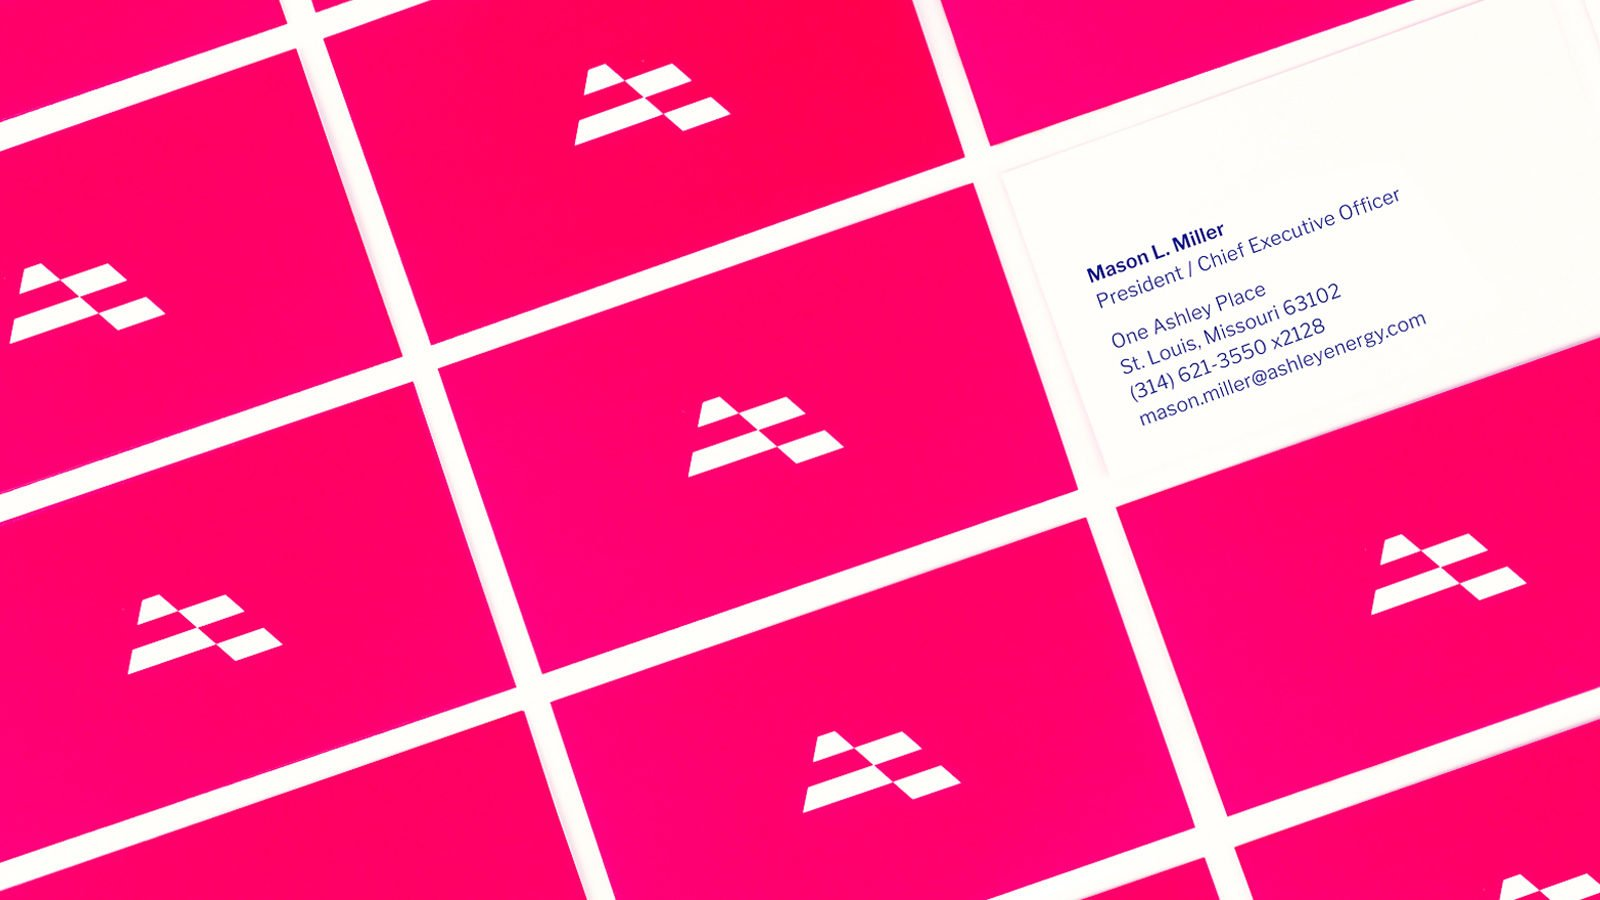 Ashley Energy Civic Brand Identity Business Cards by Bullhorn Creative